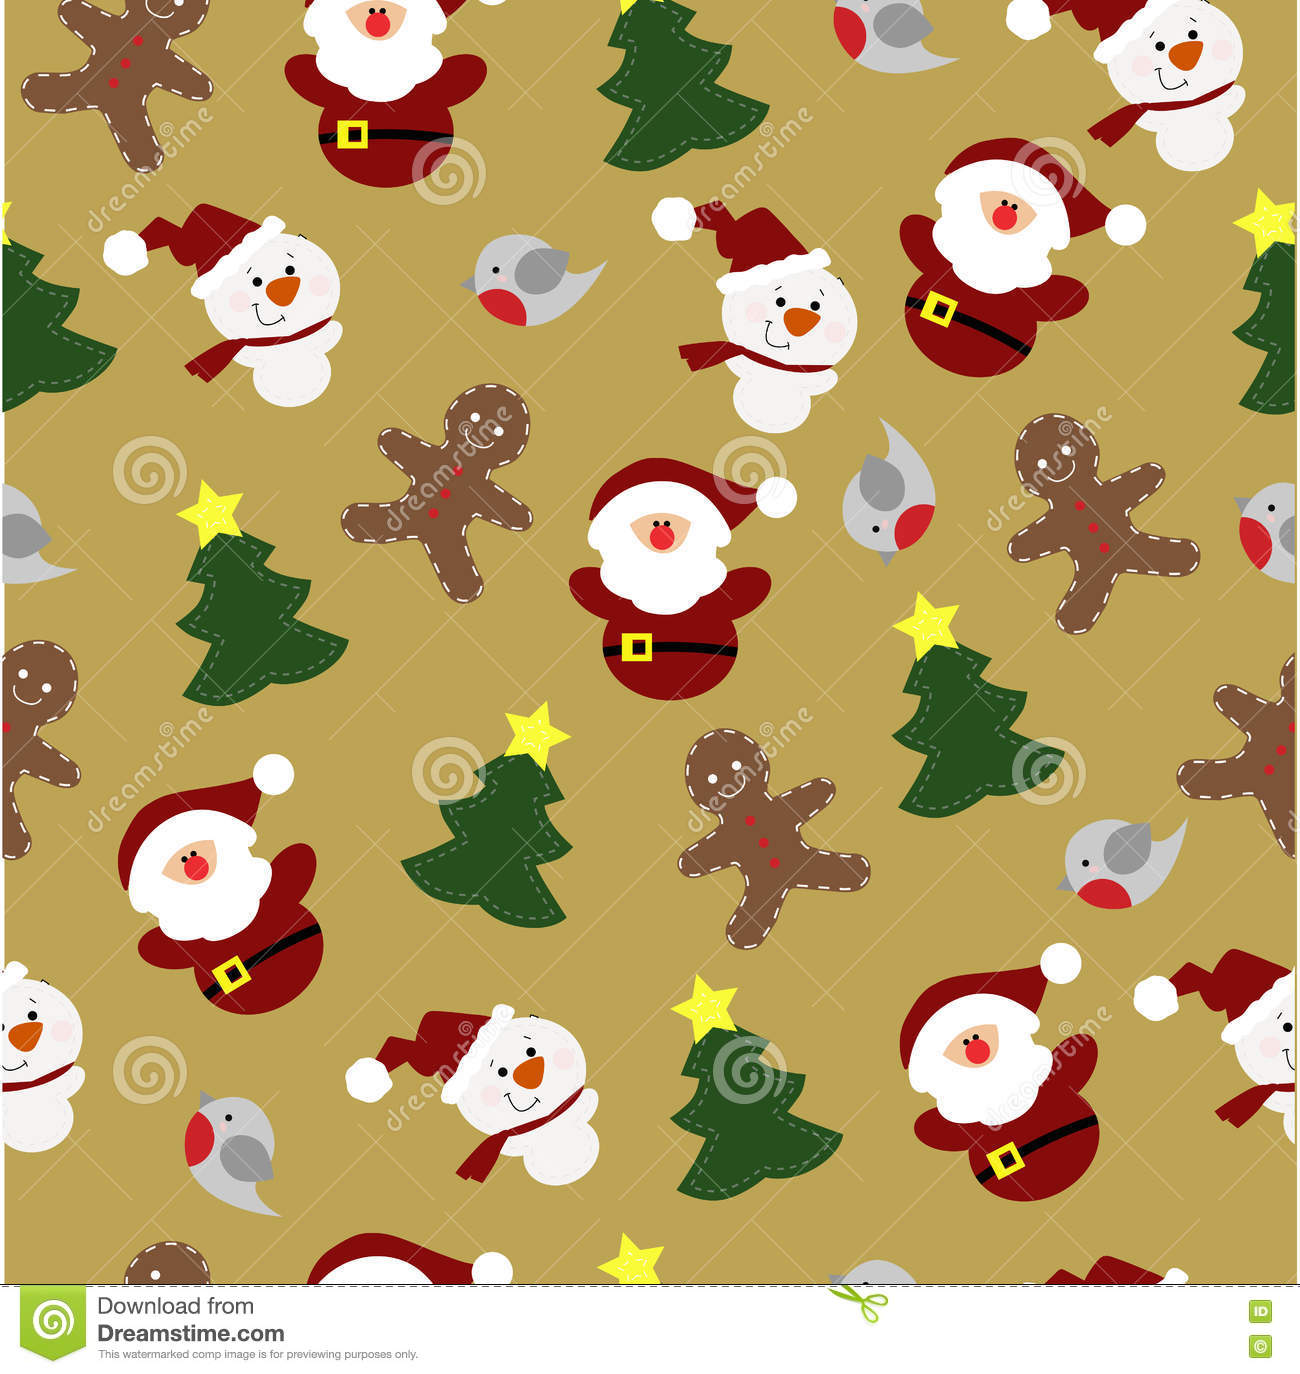 Colorful Childrens Christmas Background With Christmas